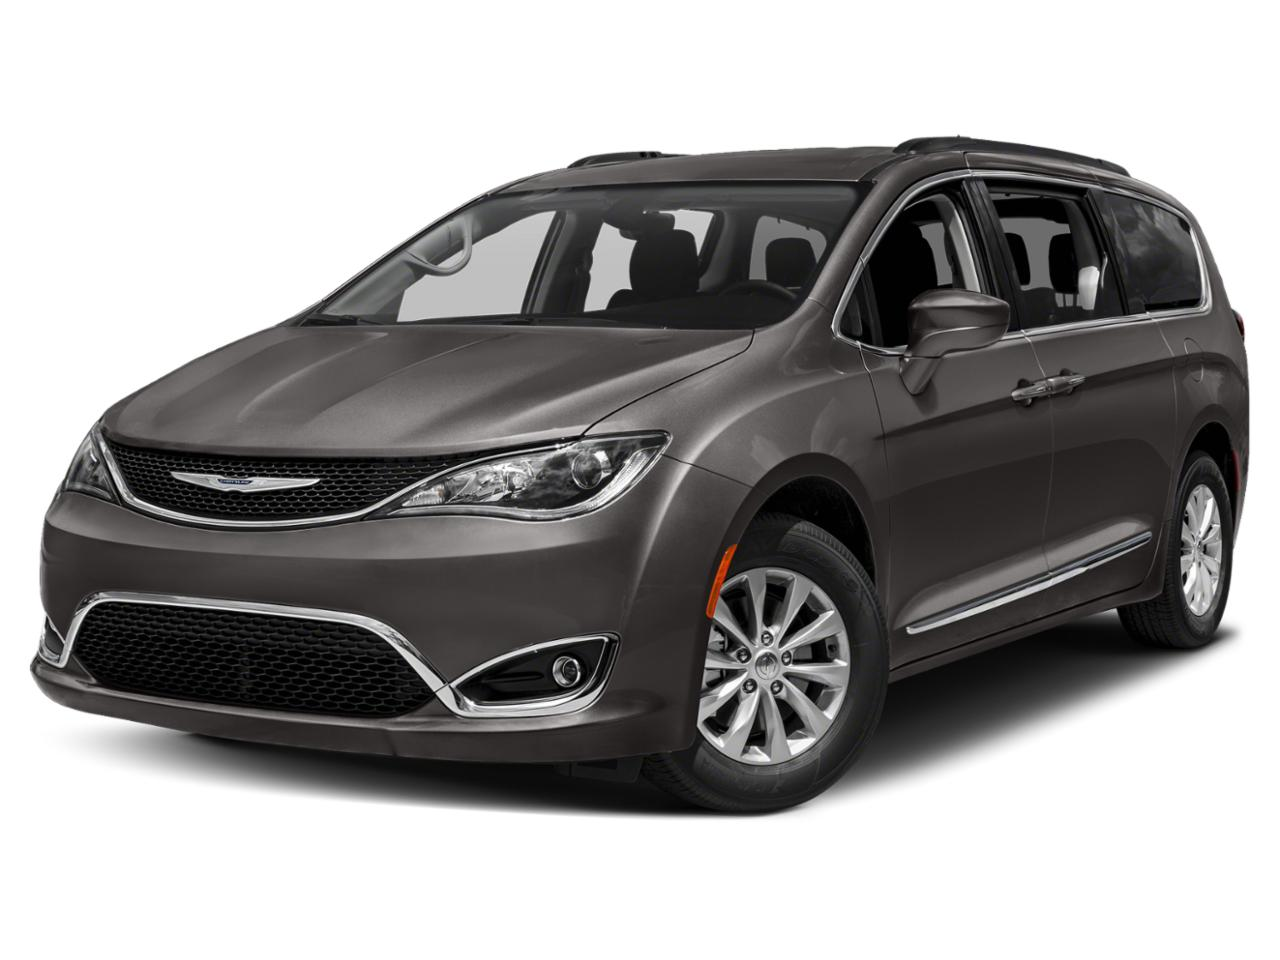 2018 Chrysler Pacifica Vehicle Photo in Plainfield, IL 60586